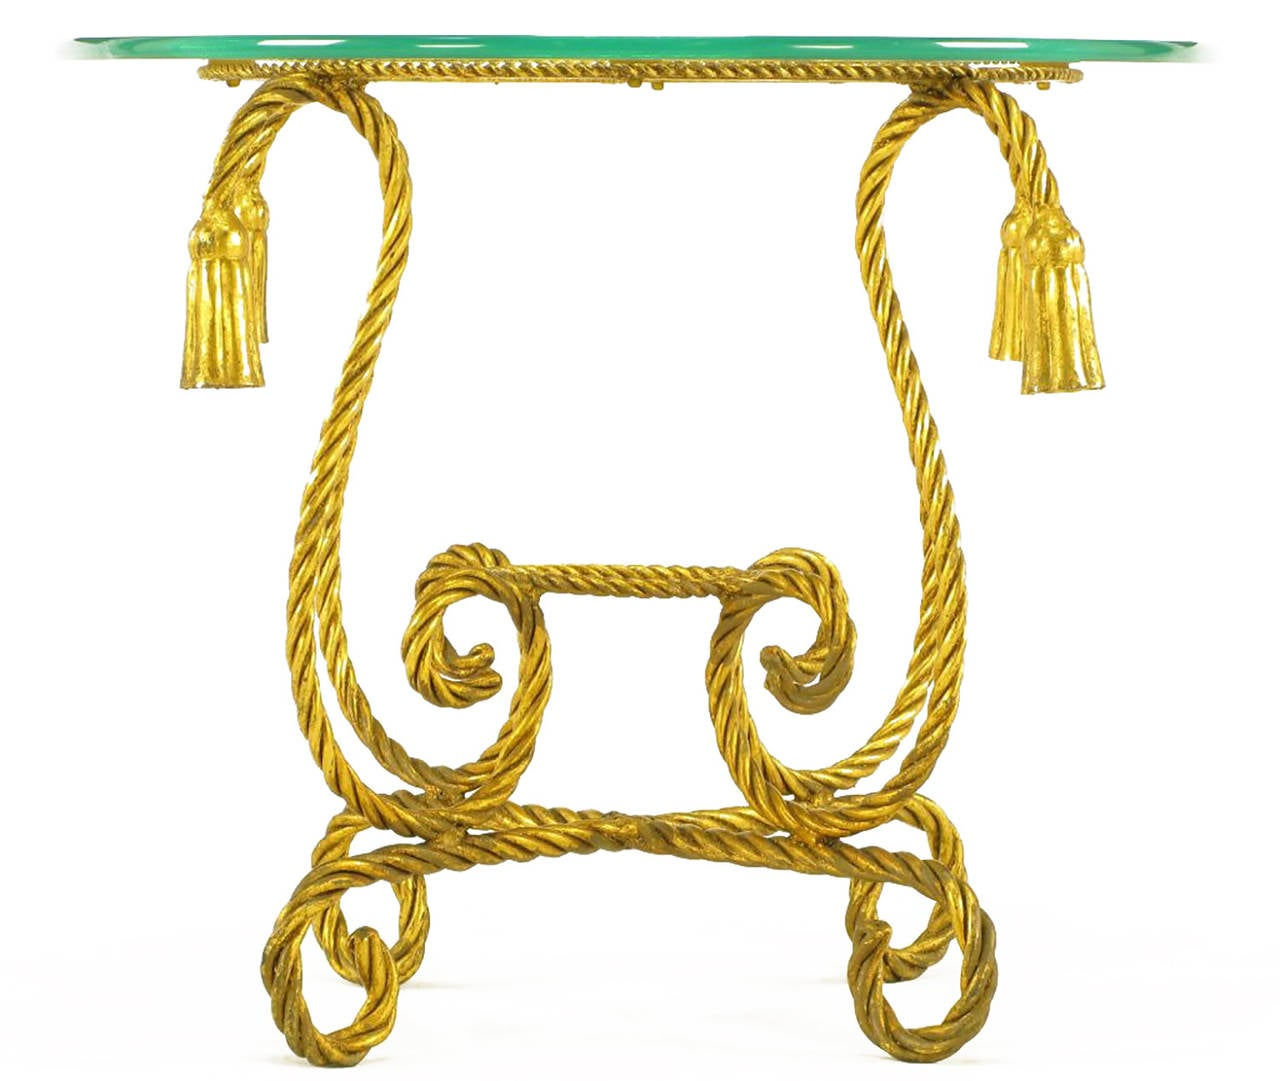 Mid-20th Century Pair of Italian Gilt Iron Rope Tables with Tassel Ornamentation For Sale